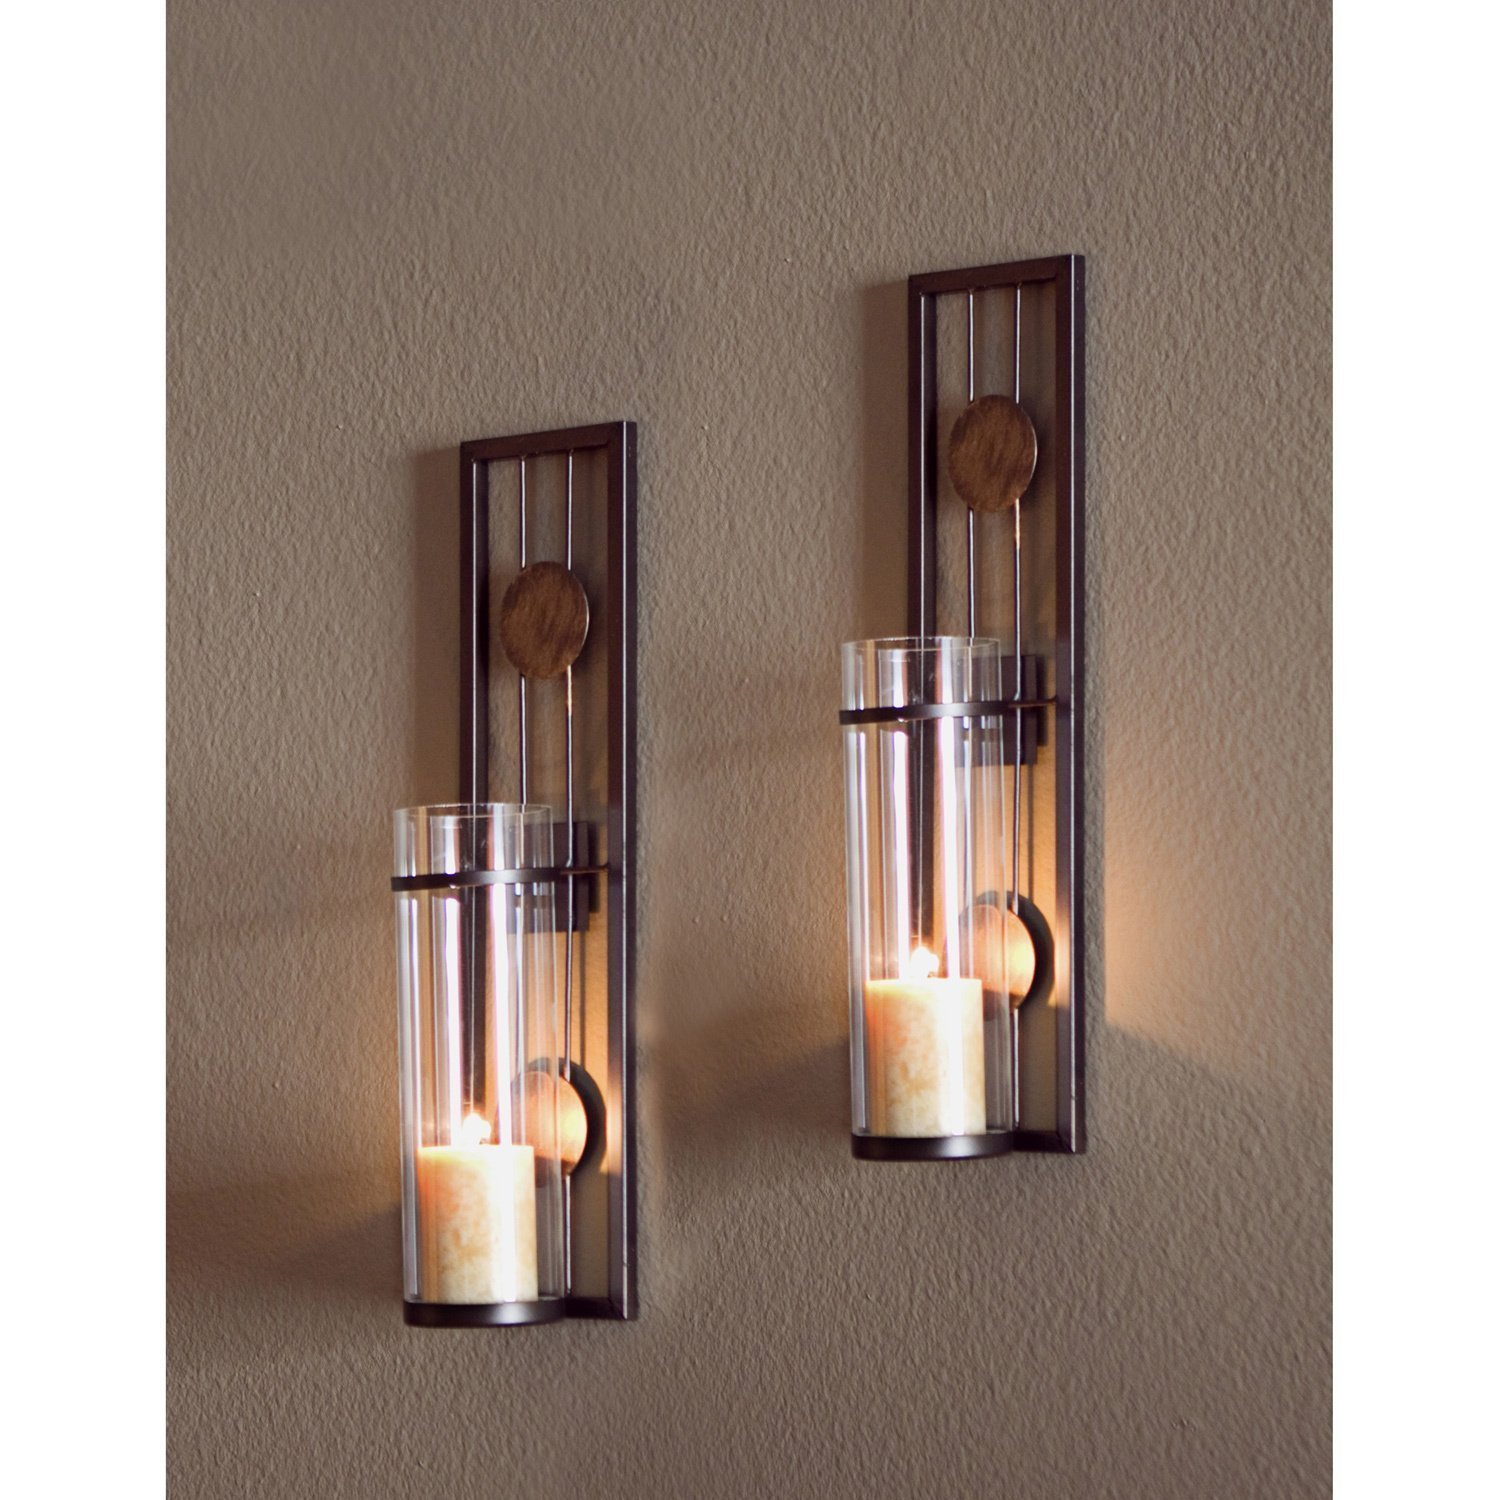 Charmant Amazon.com: Candle Wall Sconce Set Of 2 Metal Iron Glass Home Decor Room:  Home U0026 Kitchen